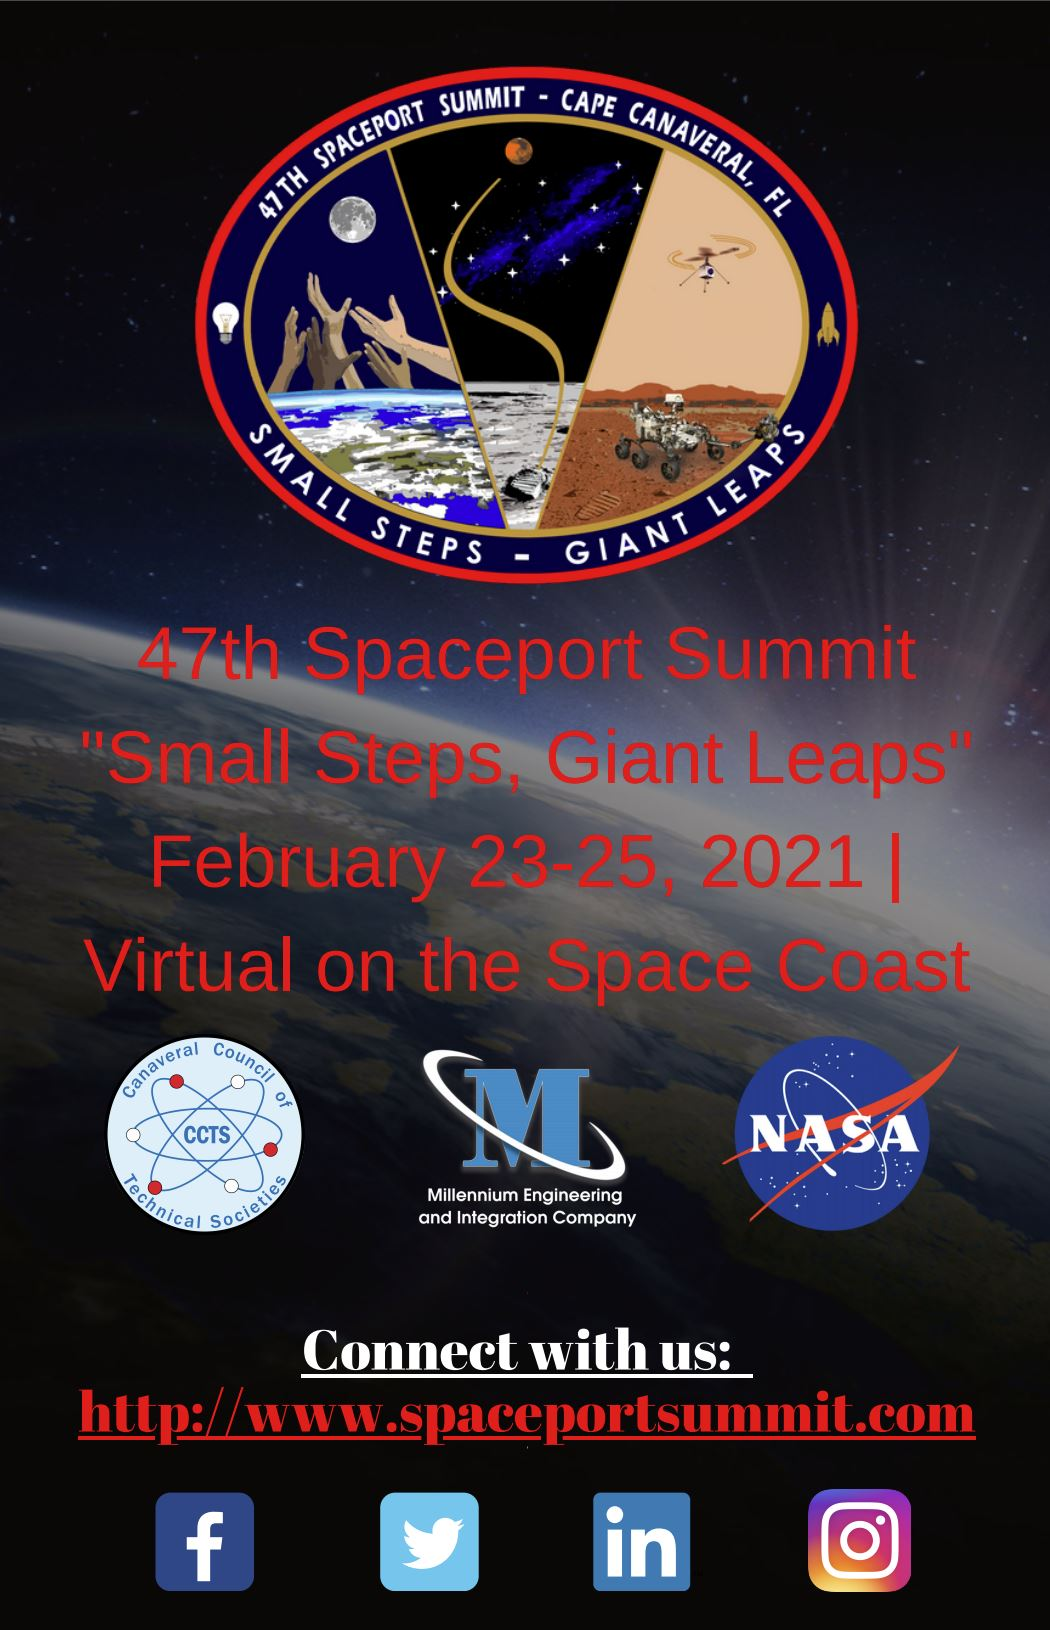 2021 Spaceport Summit Flyer